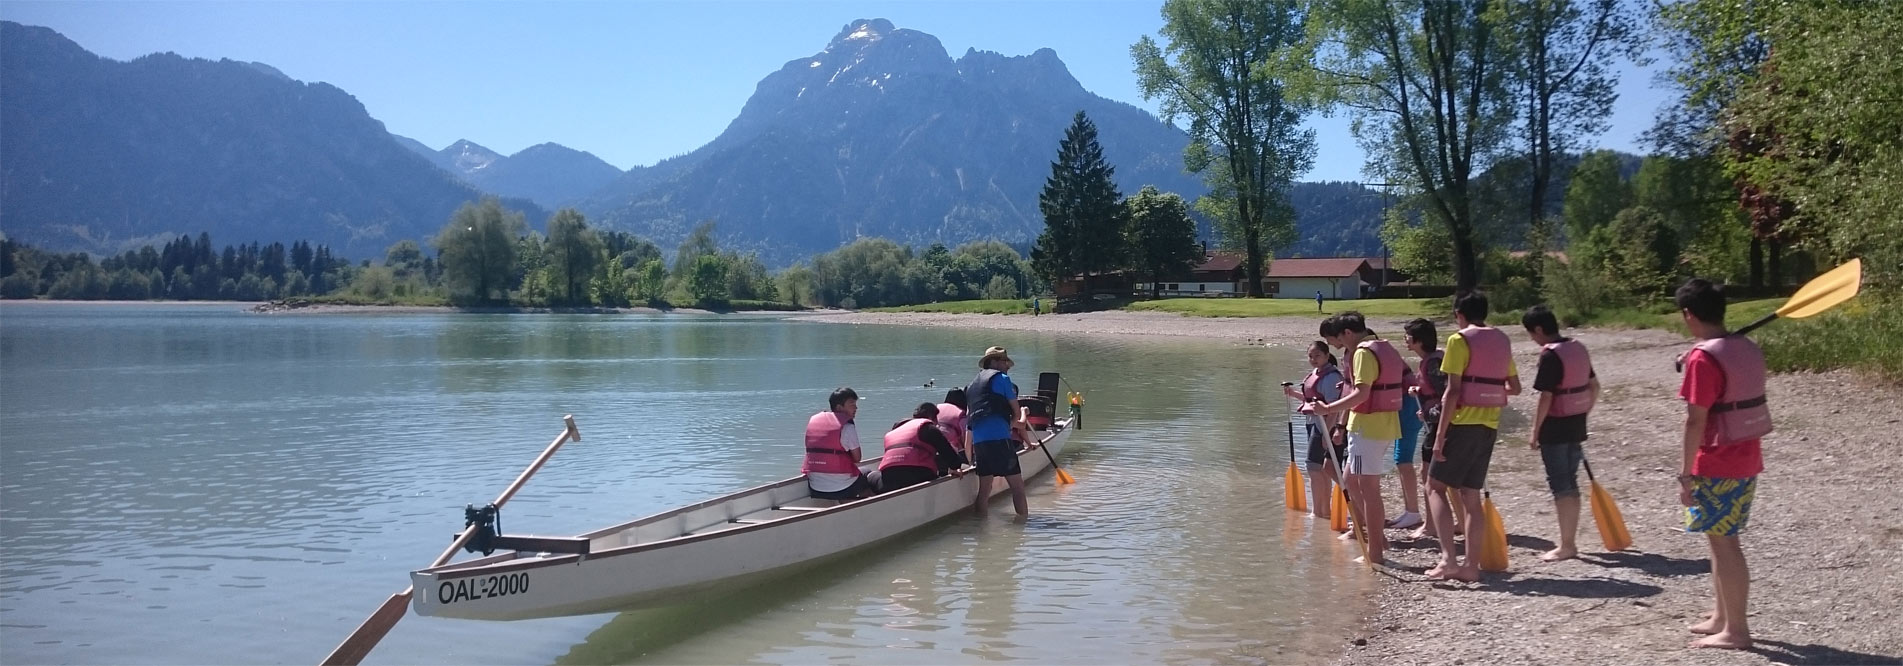 Sports activities: The Allgäu region and the Bavarian Alps offer a wide range of options for sports and leisure activities for our students.